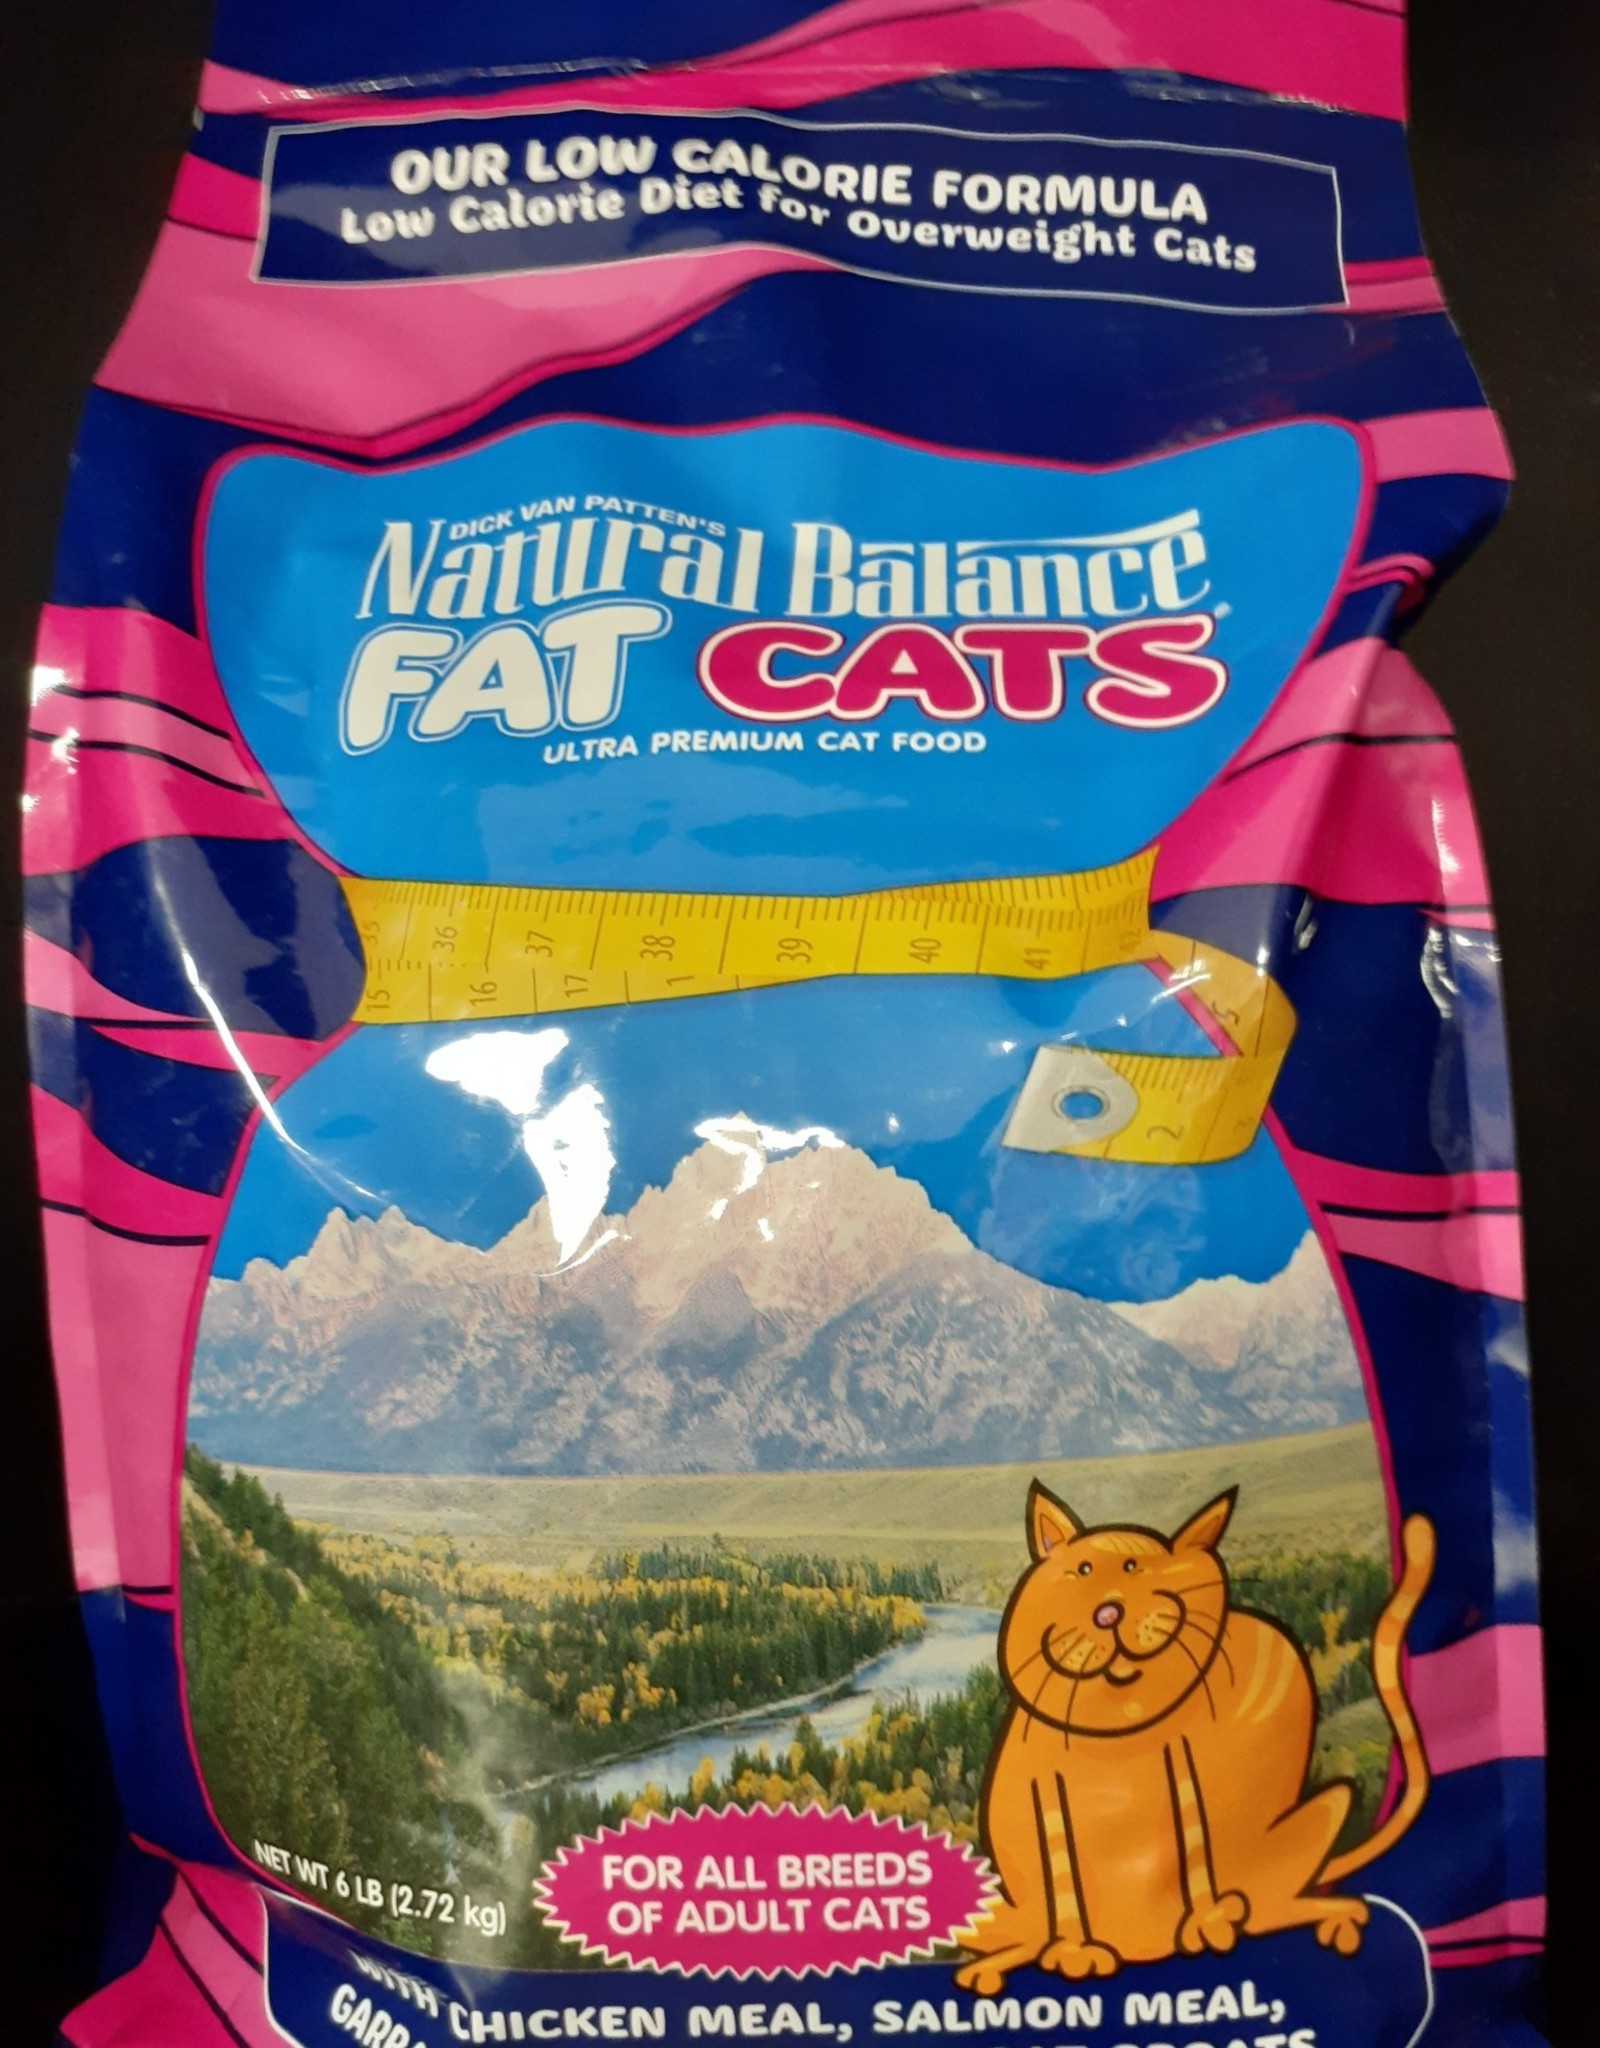 Natural Balance Natural Balance Fat Cats 6lb